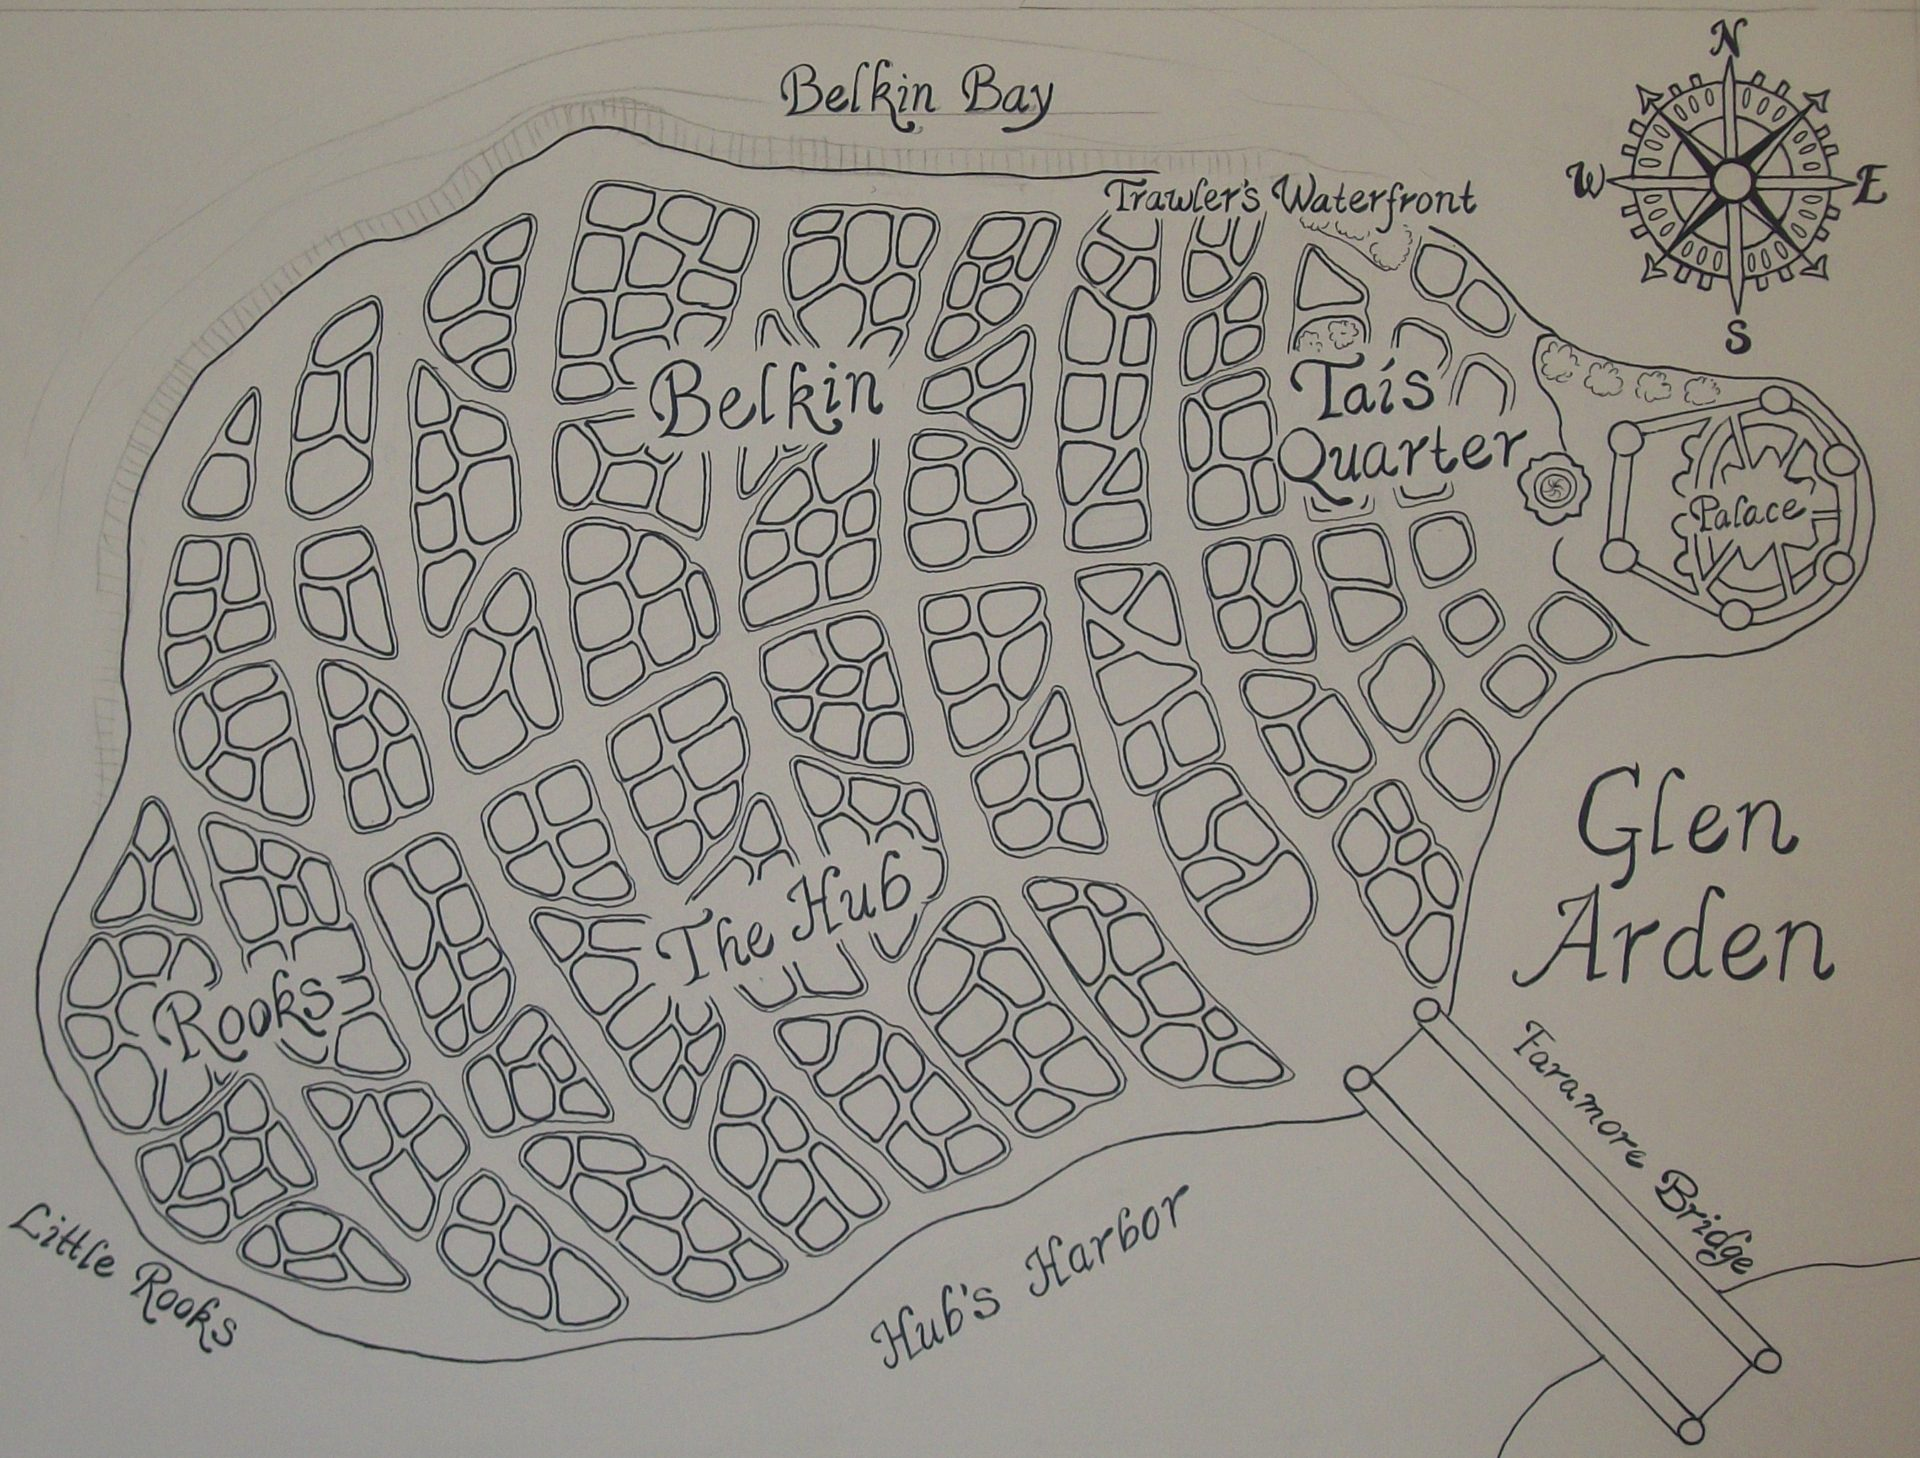 Glen Arden Map, 2012, 12x16, Pen and Ink